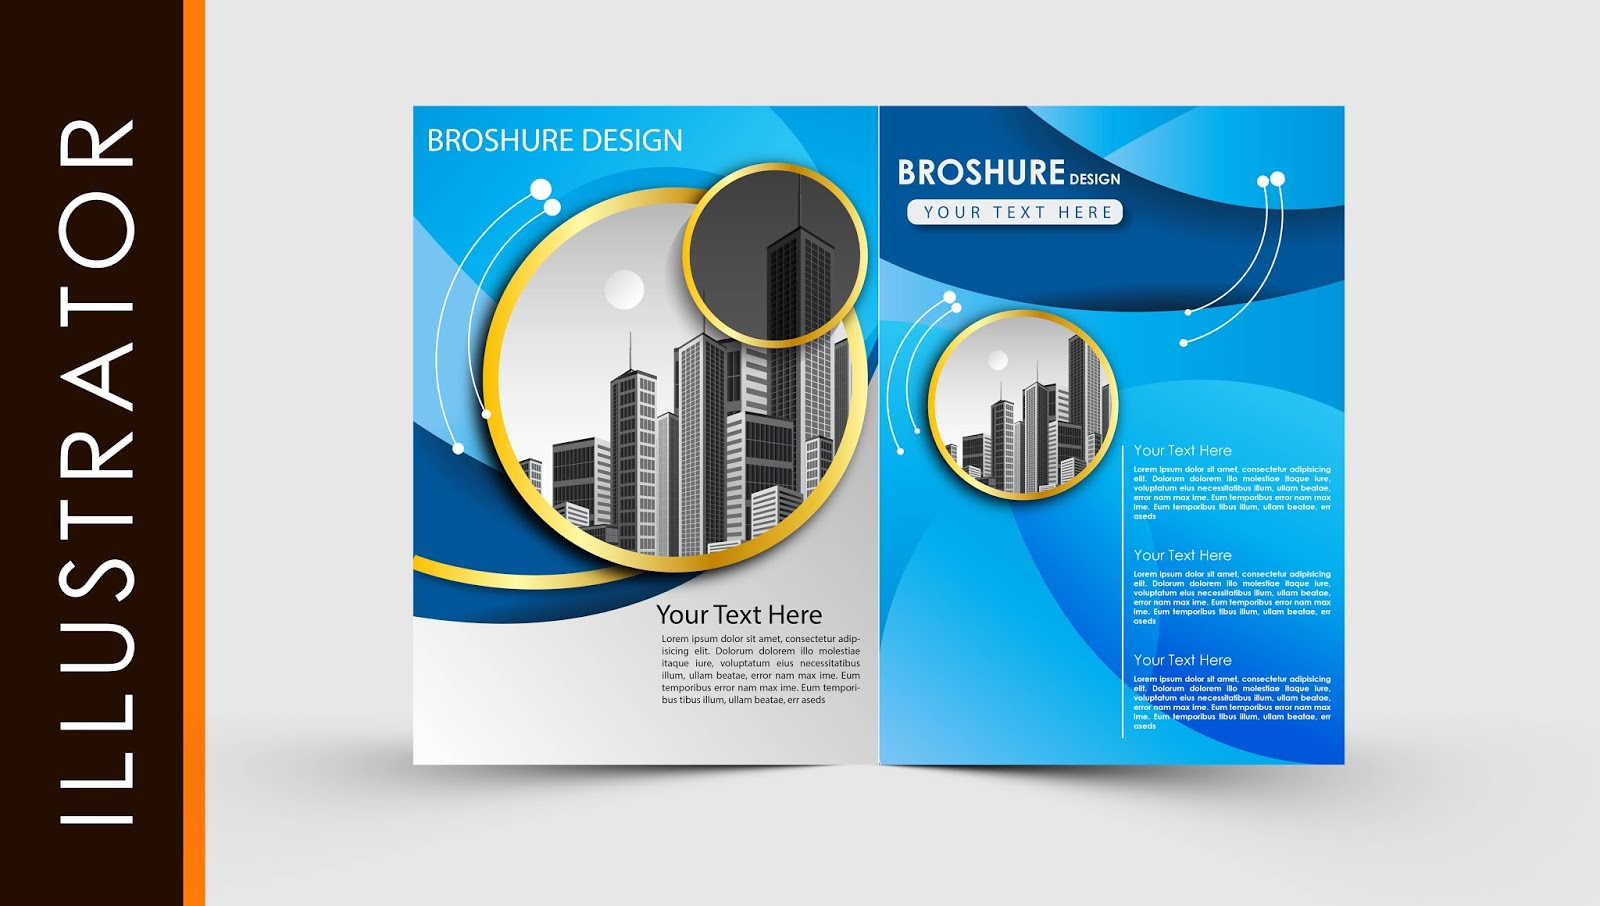 free download adobe illustrator template brochure two fold ideosprocess. Black Bedroom Furniture Sets. Home Design Ideas